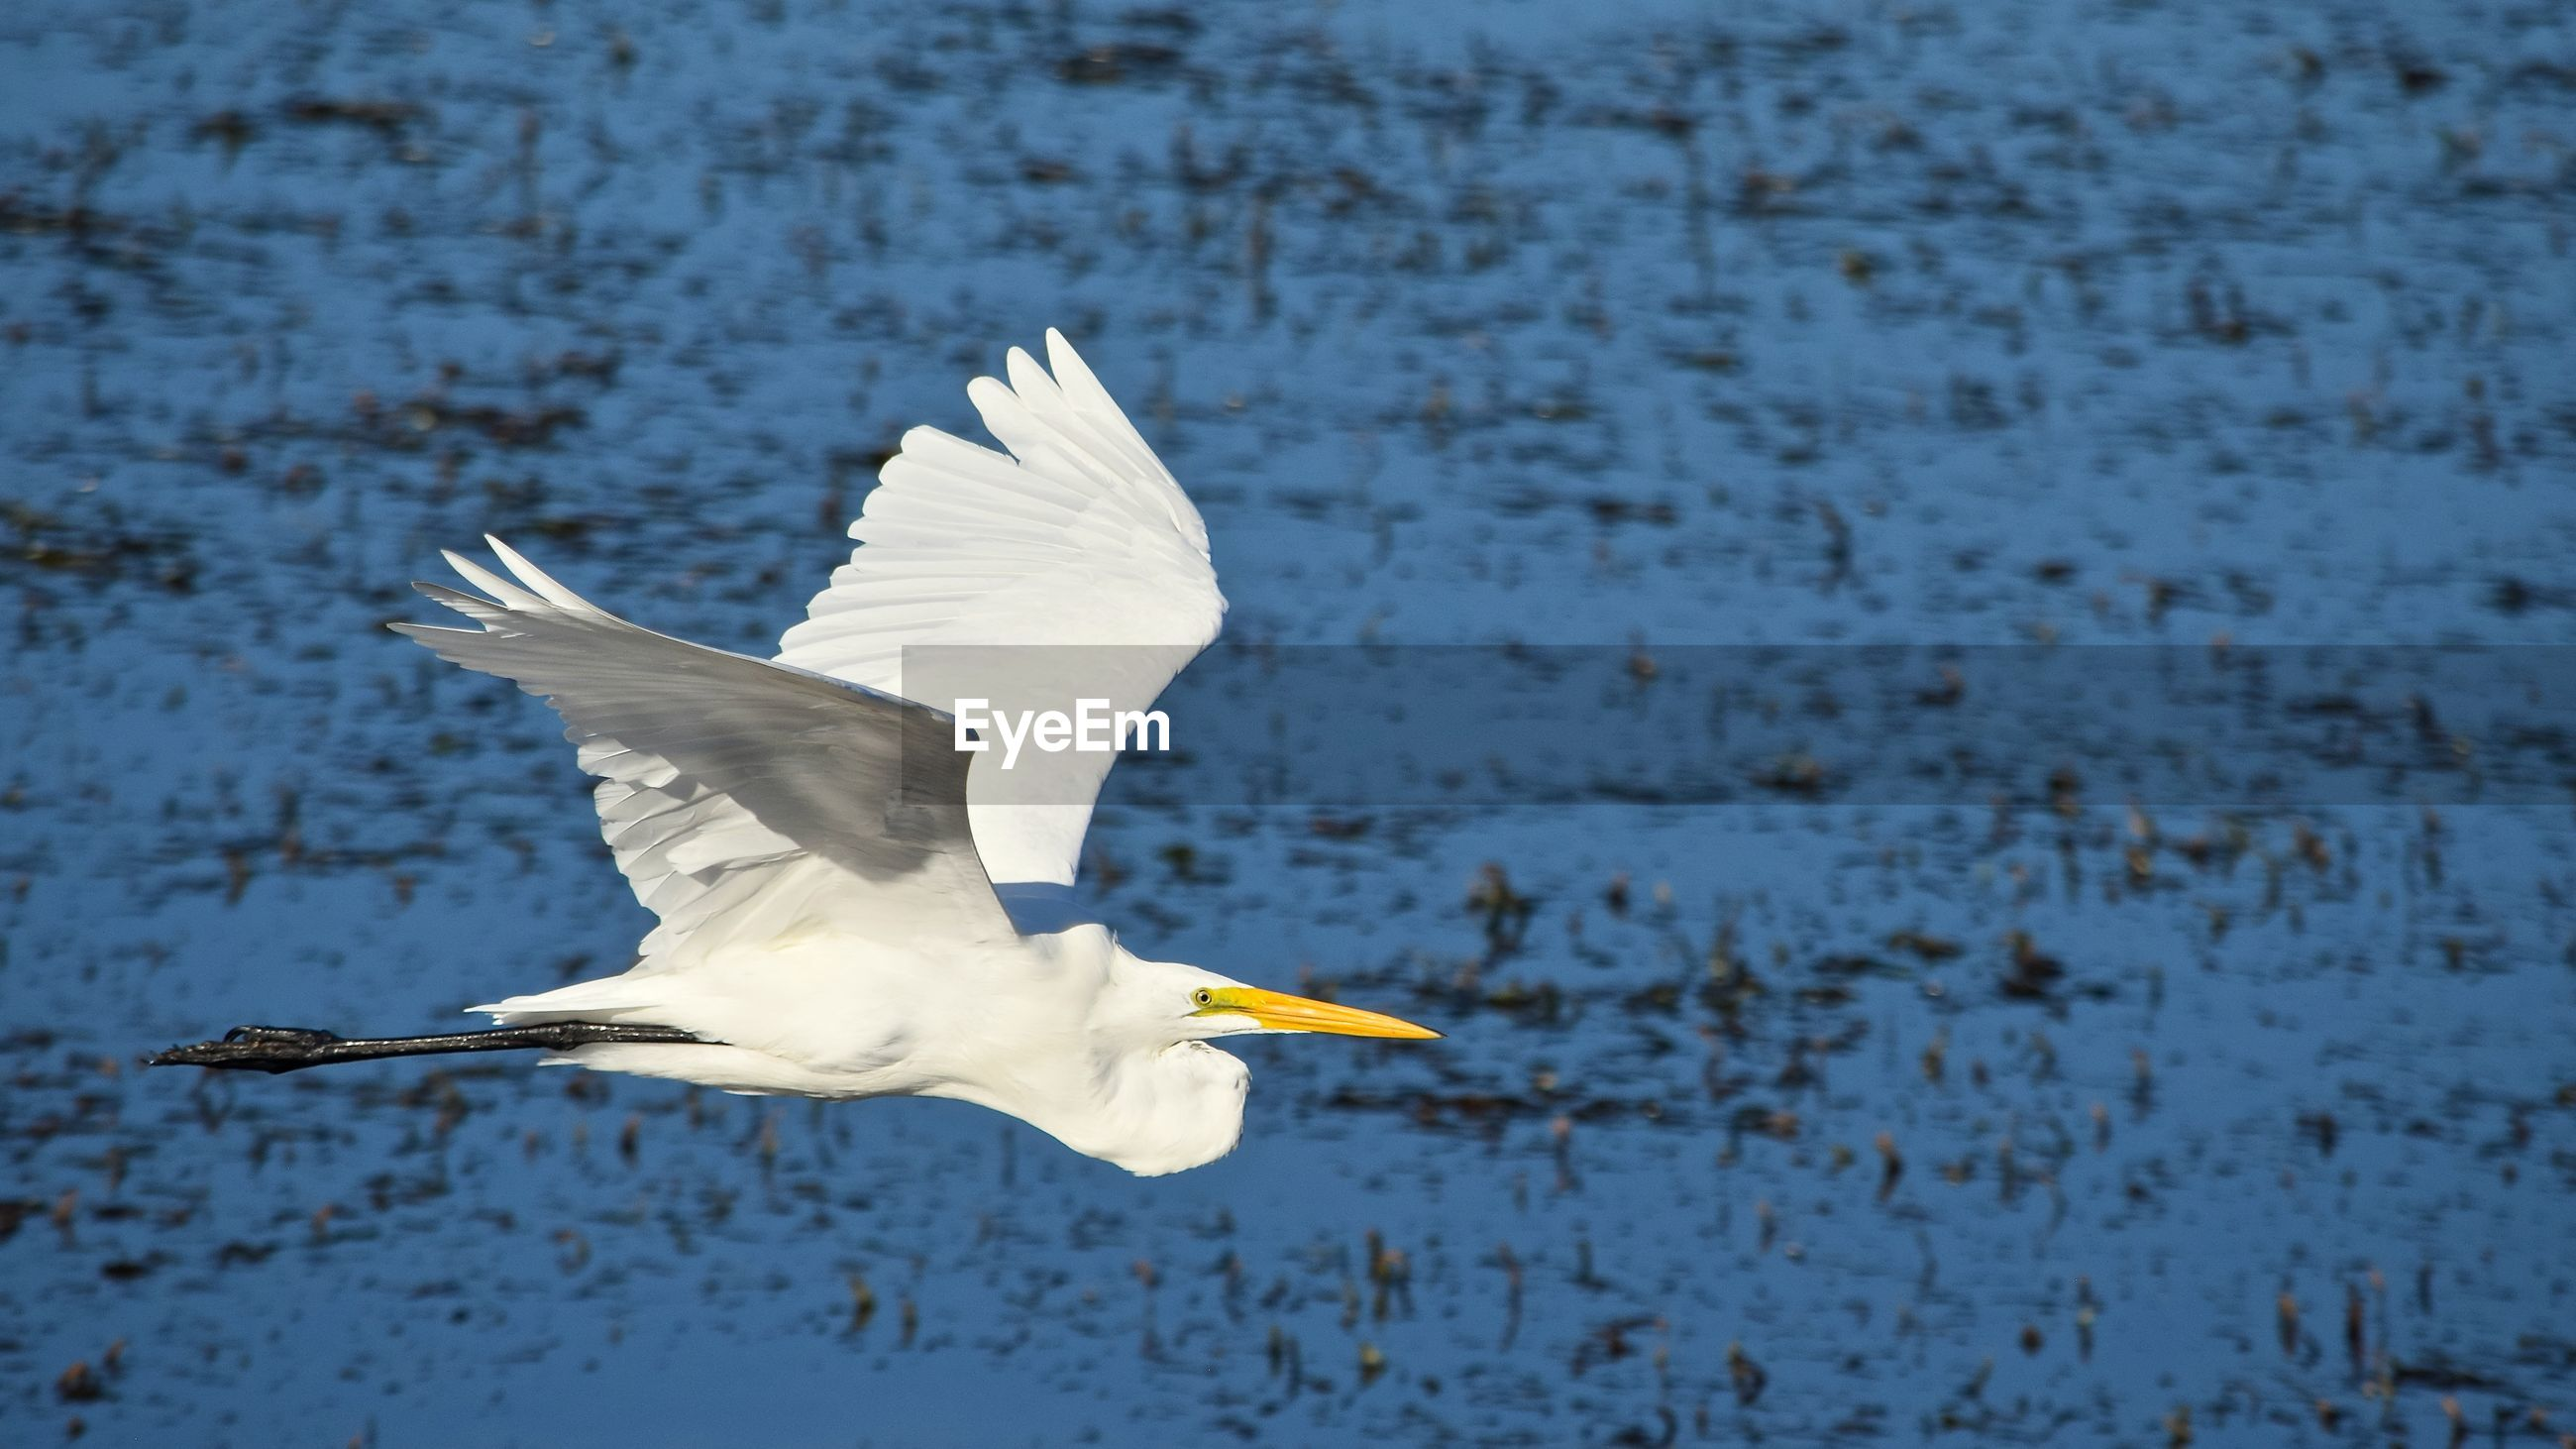 CLOSE-UP OF WHITE FLYING OVER LAKE